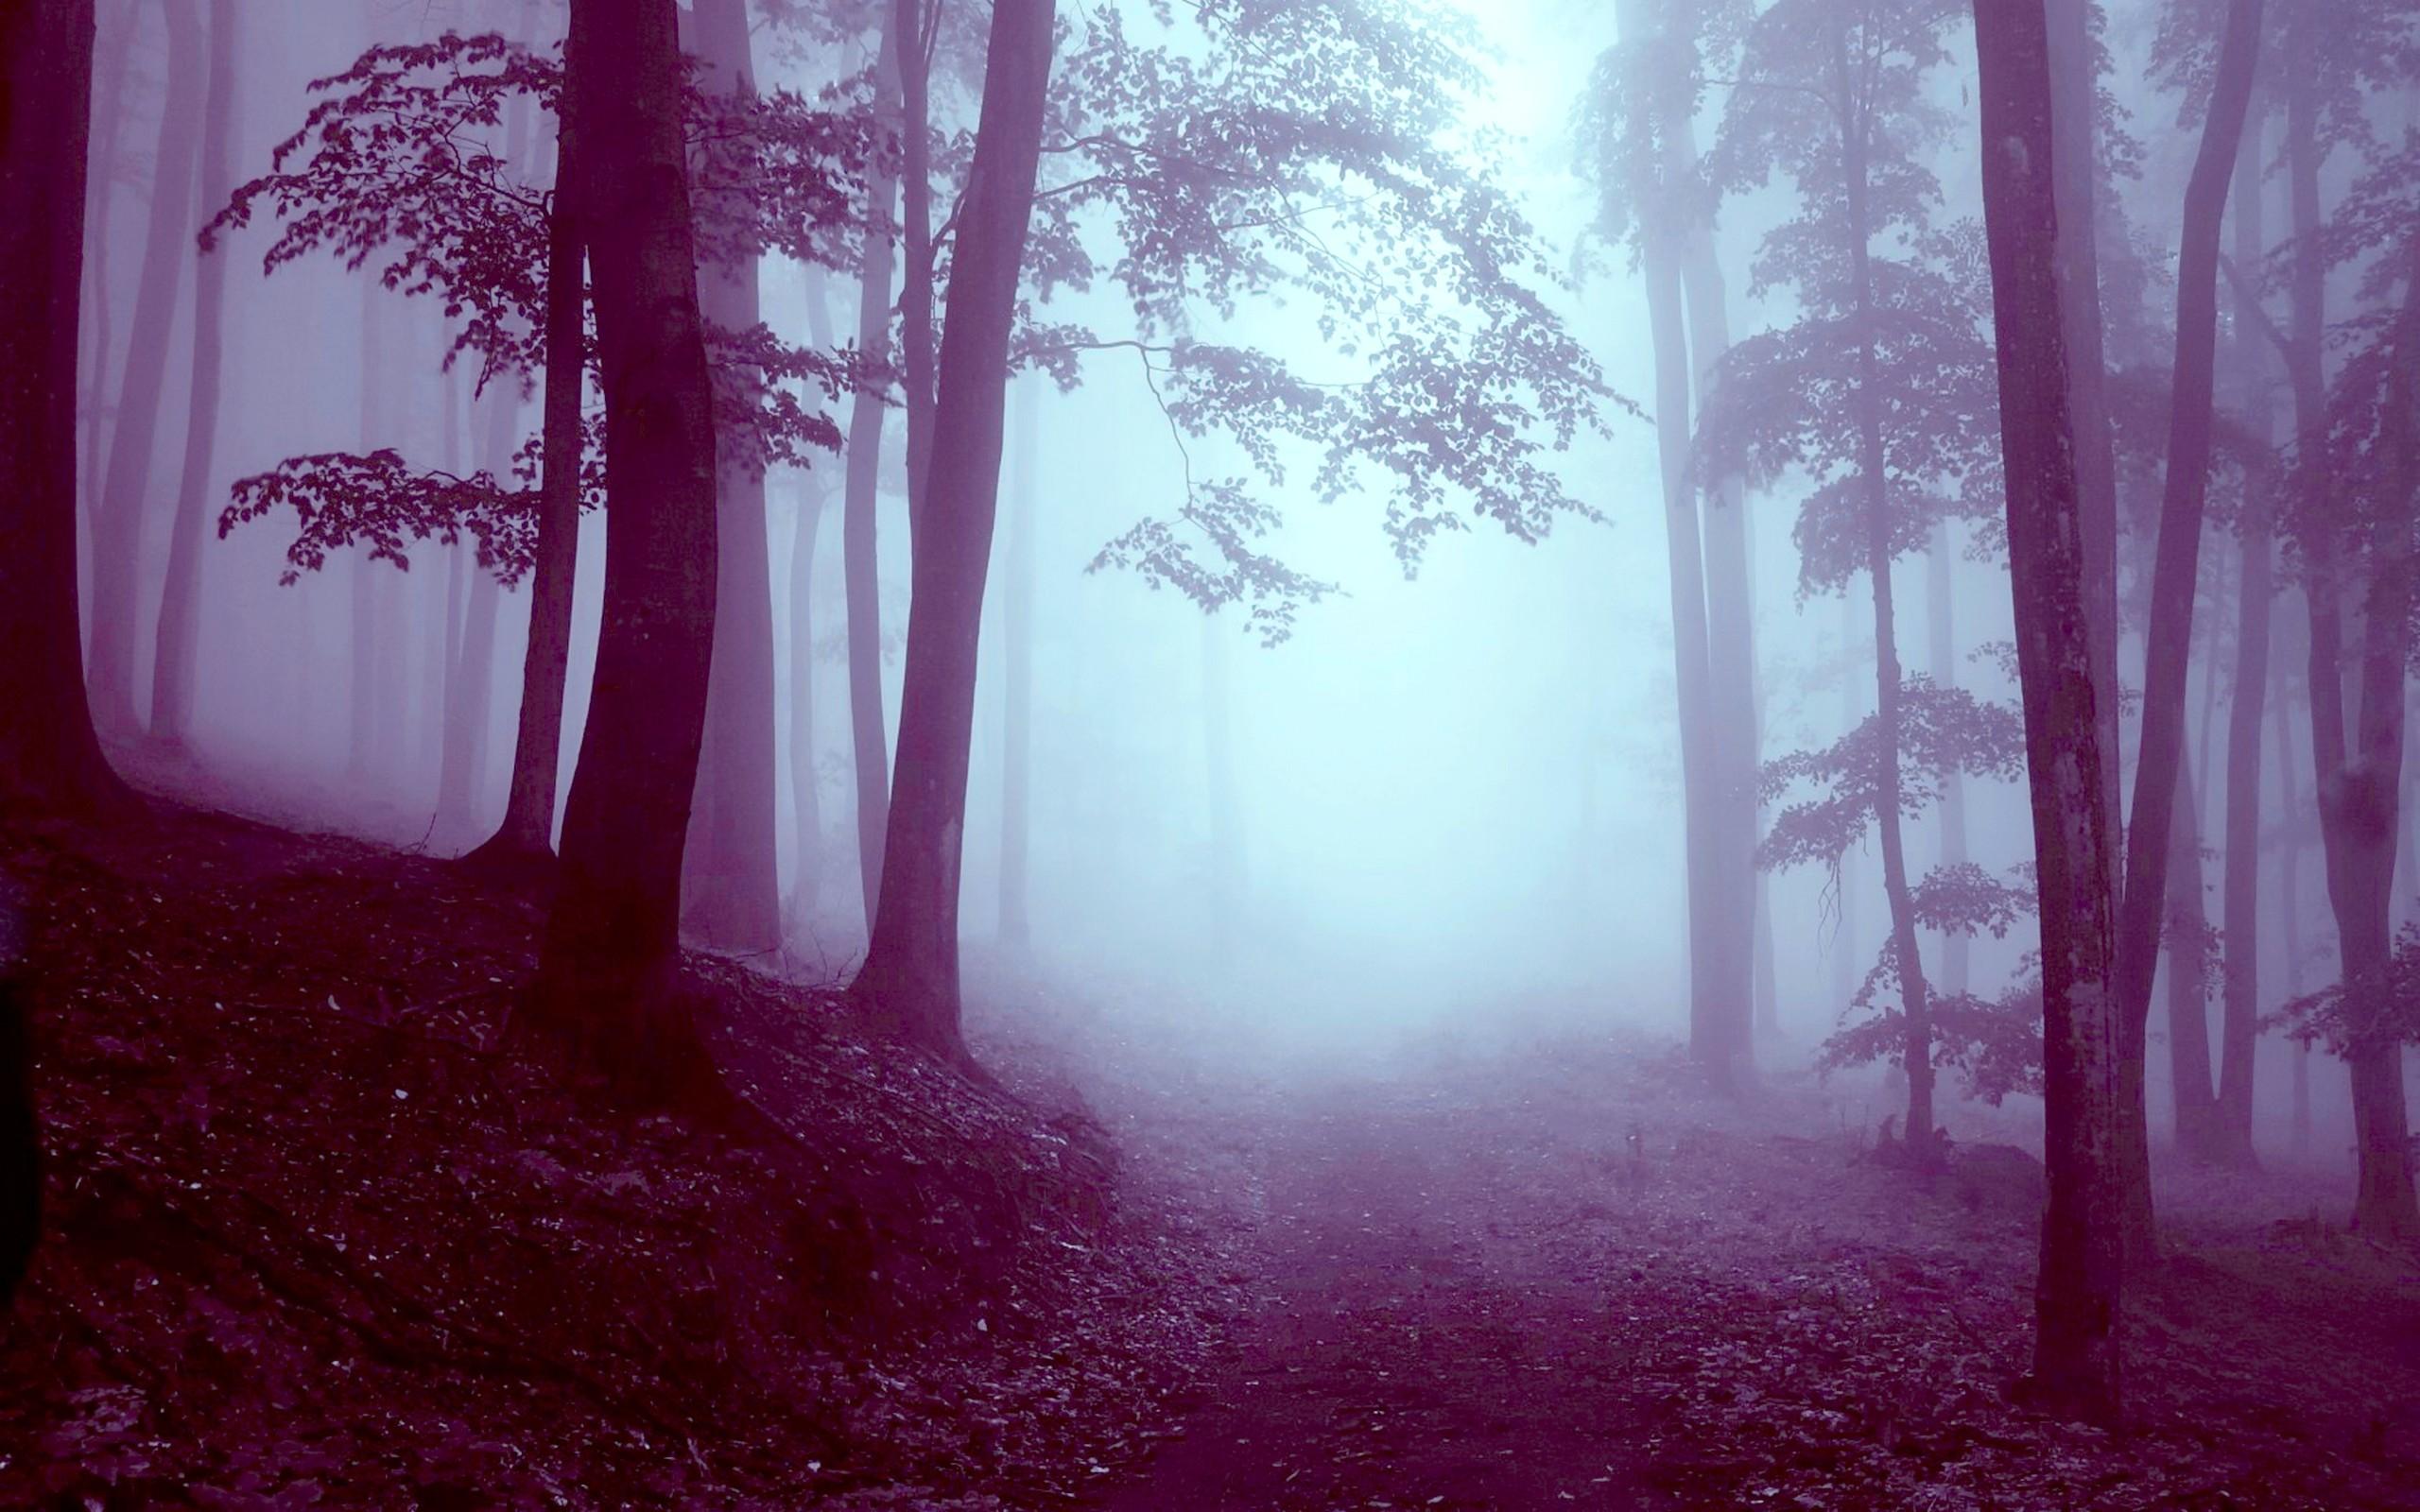 wallpaper.wiki-HD-foggy-forest-background-PIC-WPB004348